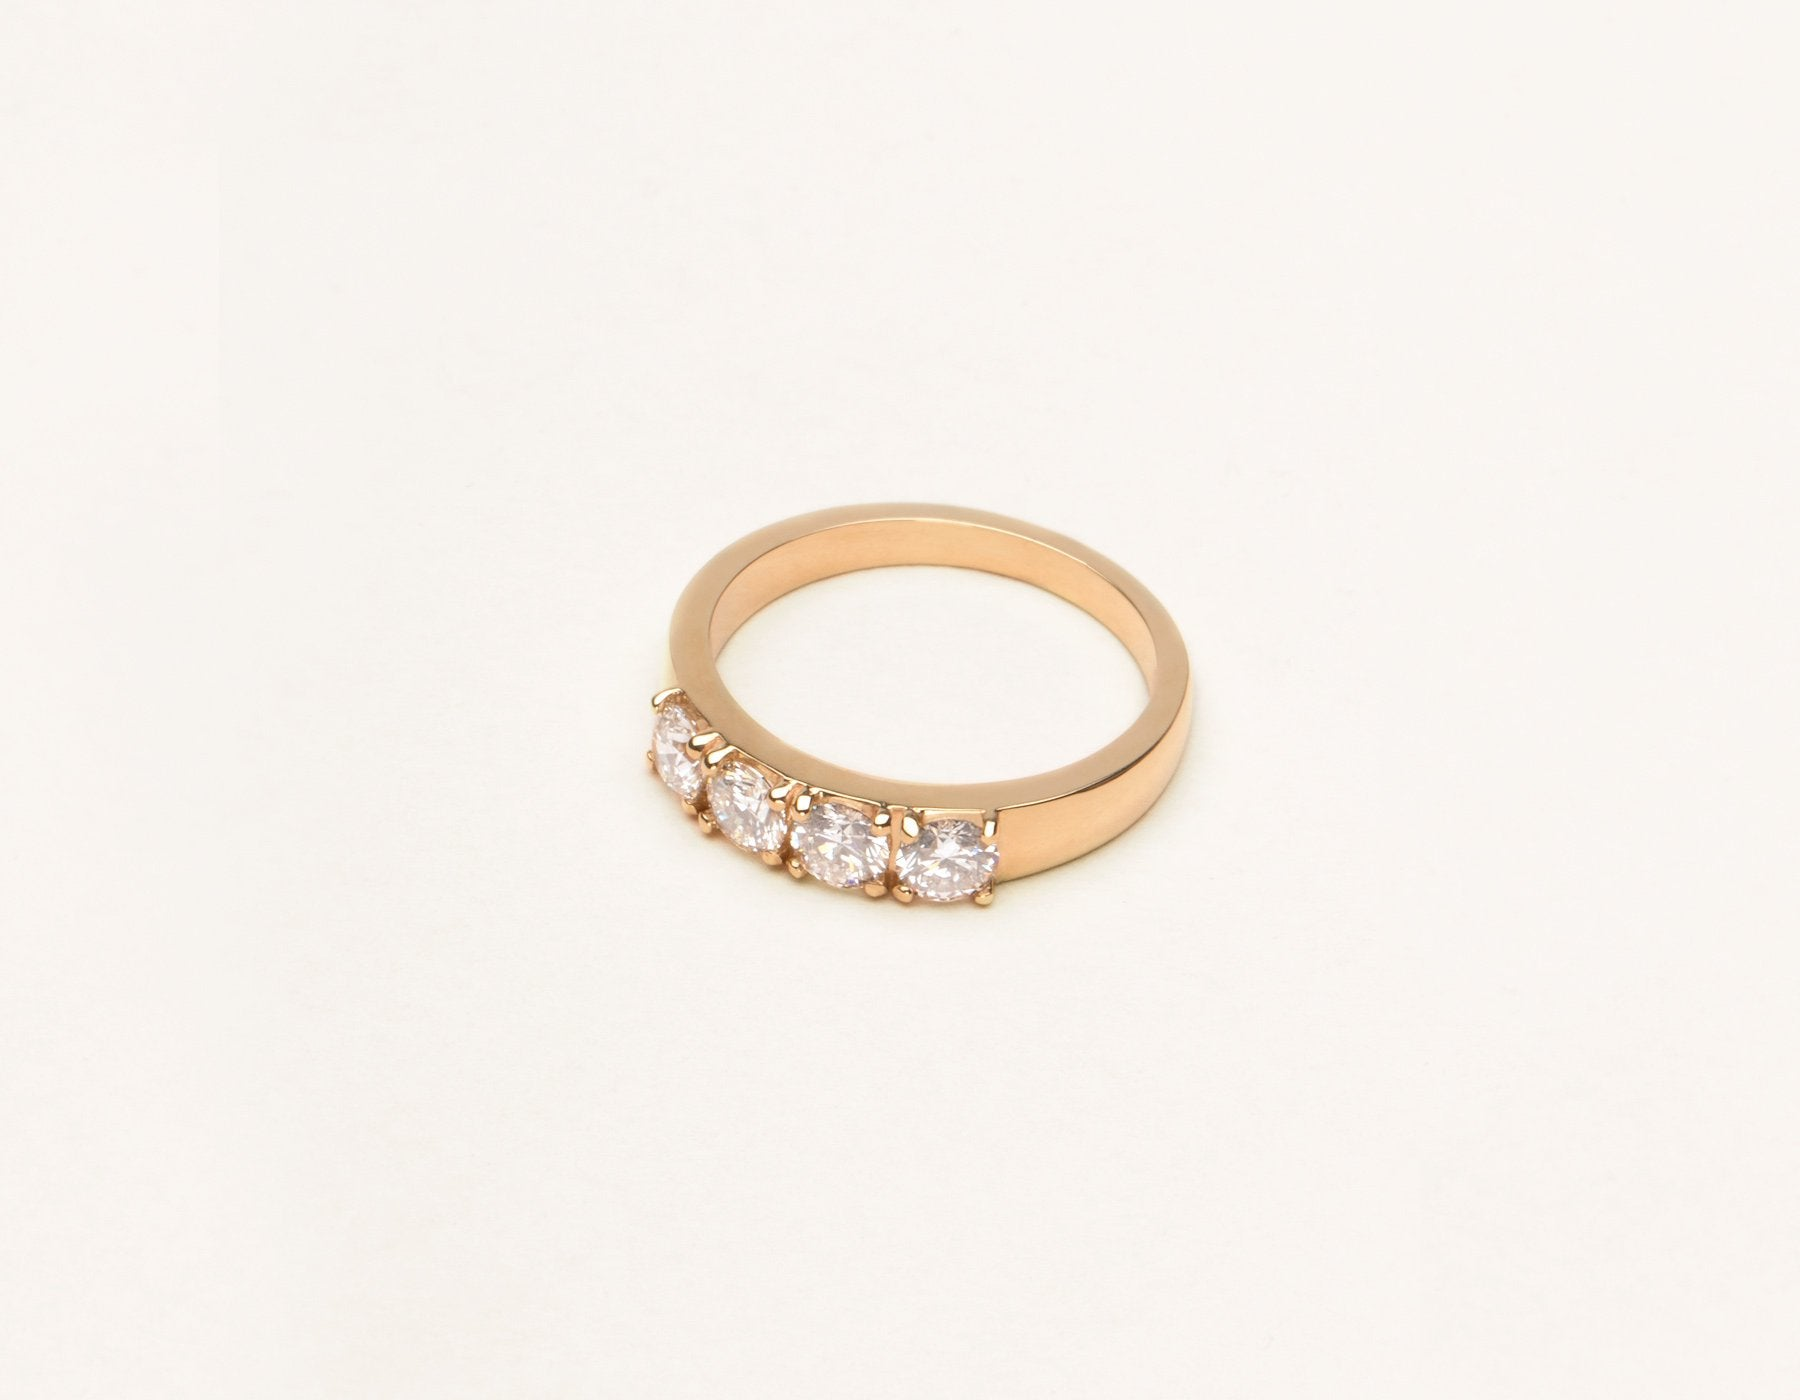 Classic minimalist 14k solid gold Round brilliant cut Diamond Tetrad Band by Vrai & Oro sustainable jewelry, 14K Rose Gold